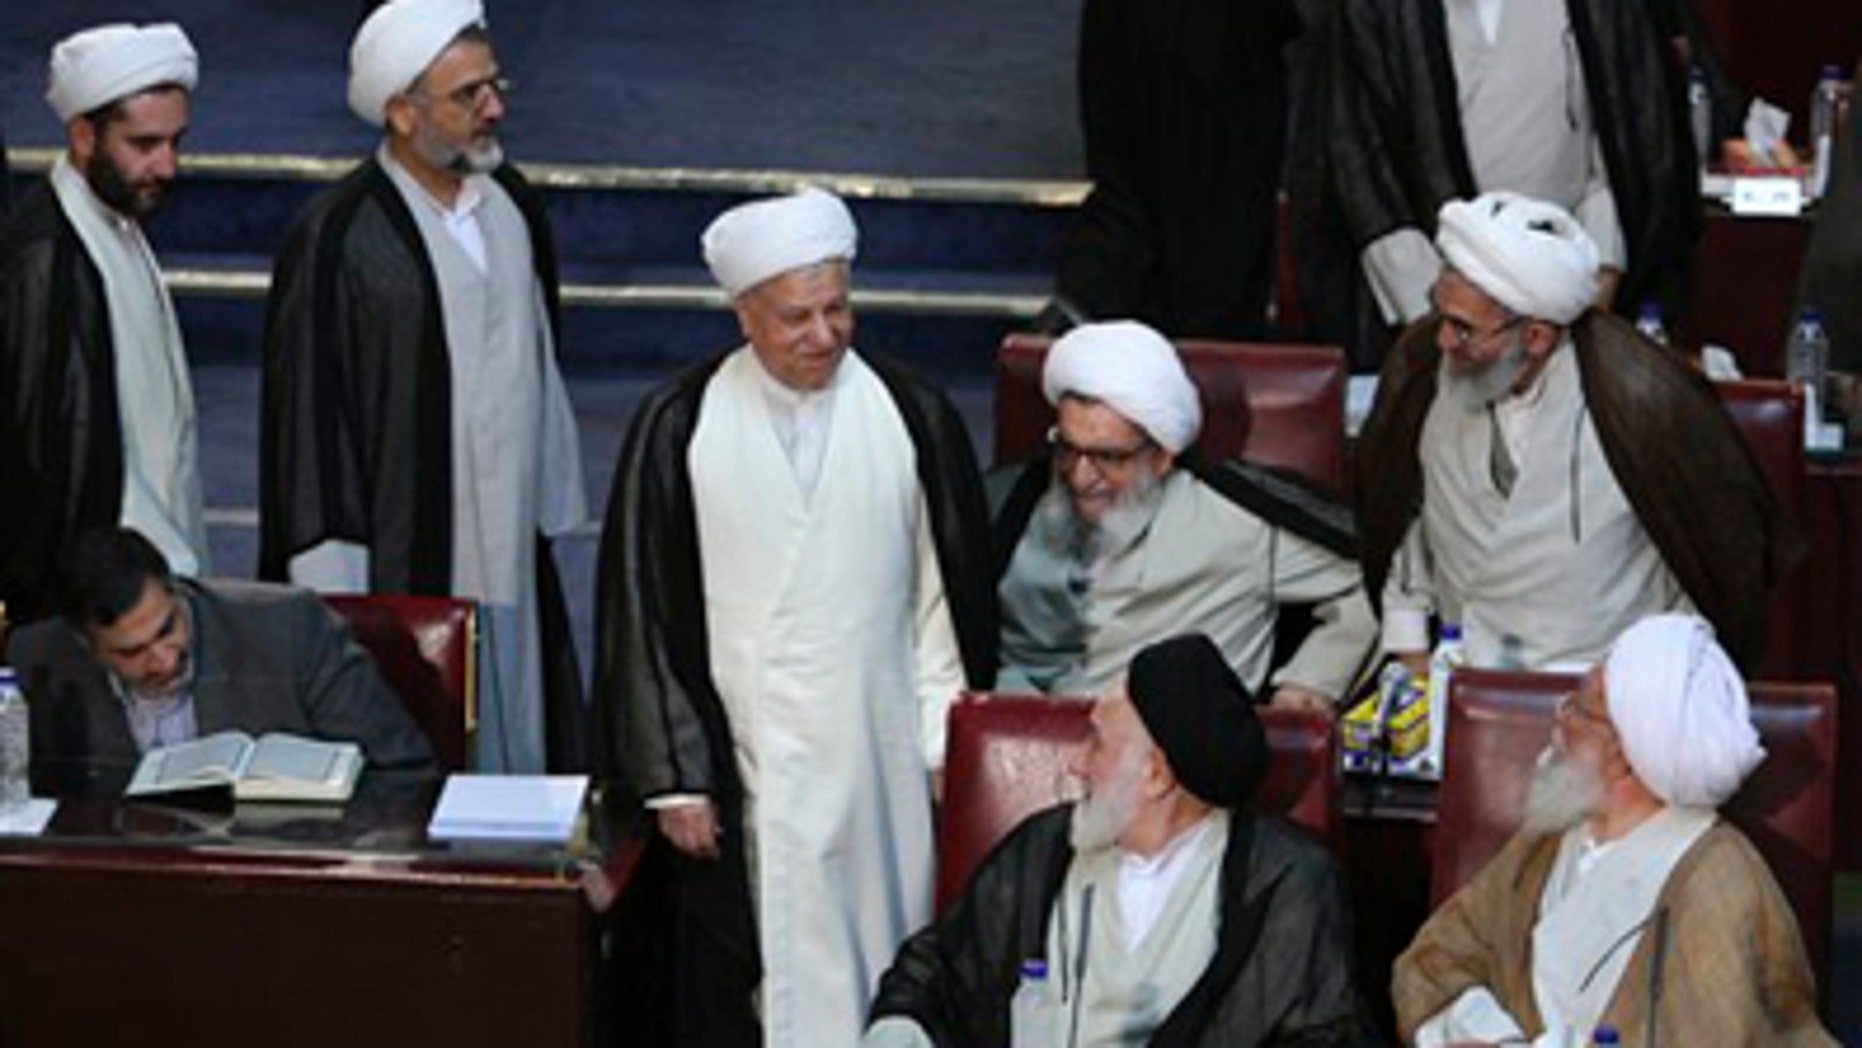 Tuesday: Former influential President Akbar Hashemi Rafsanjani, center, a member of Iran's Experts Assembly, arrives to attend the assembly's seasonal meeting, in Tehran, Iran.  The Experts Assembly is a powerful clerical body with the right to monitor the performance of Iran's supreme leader.